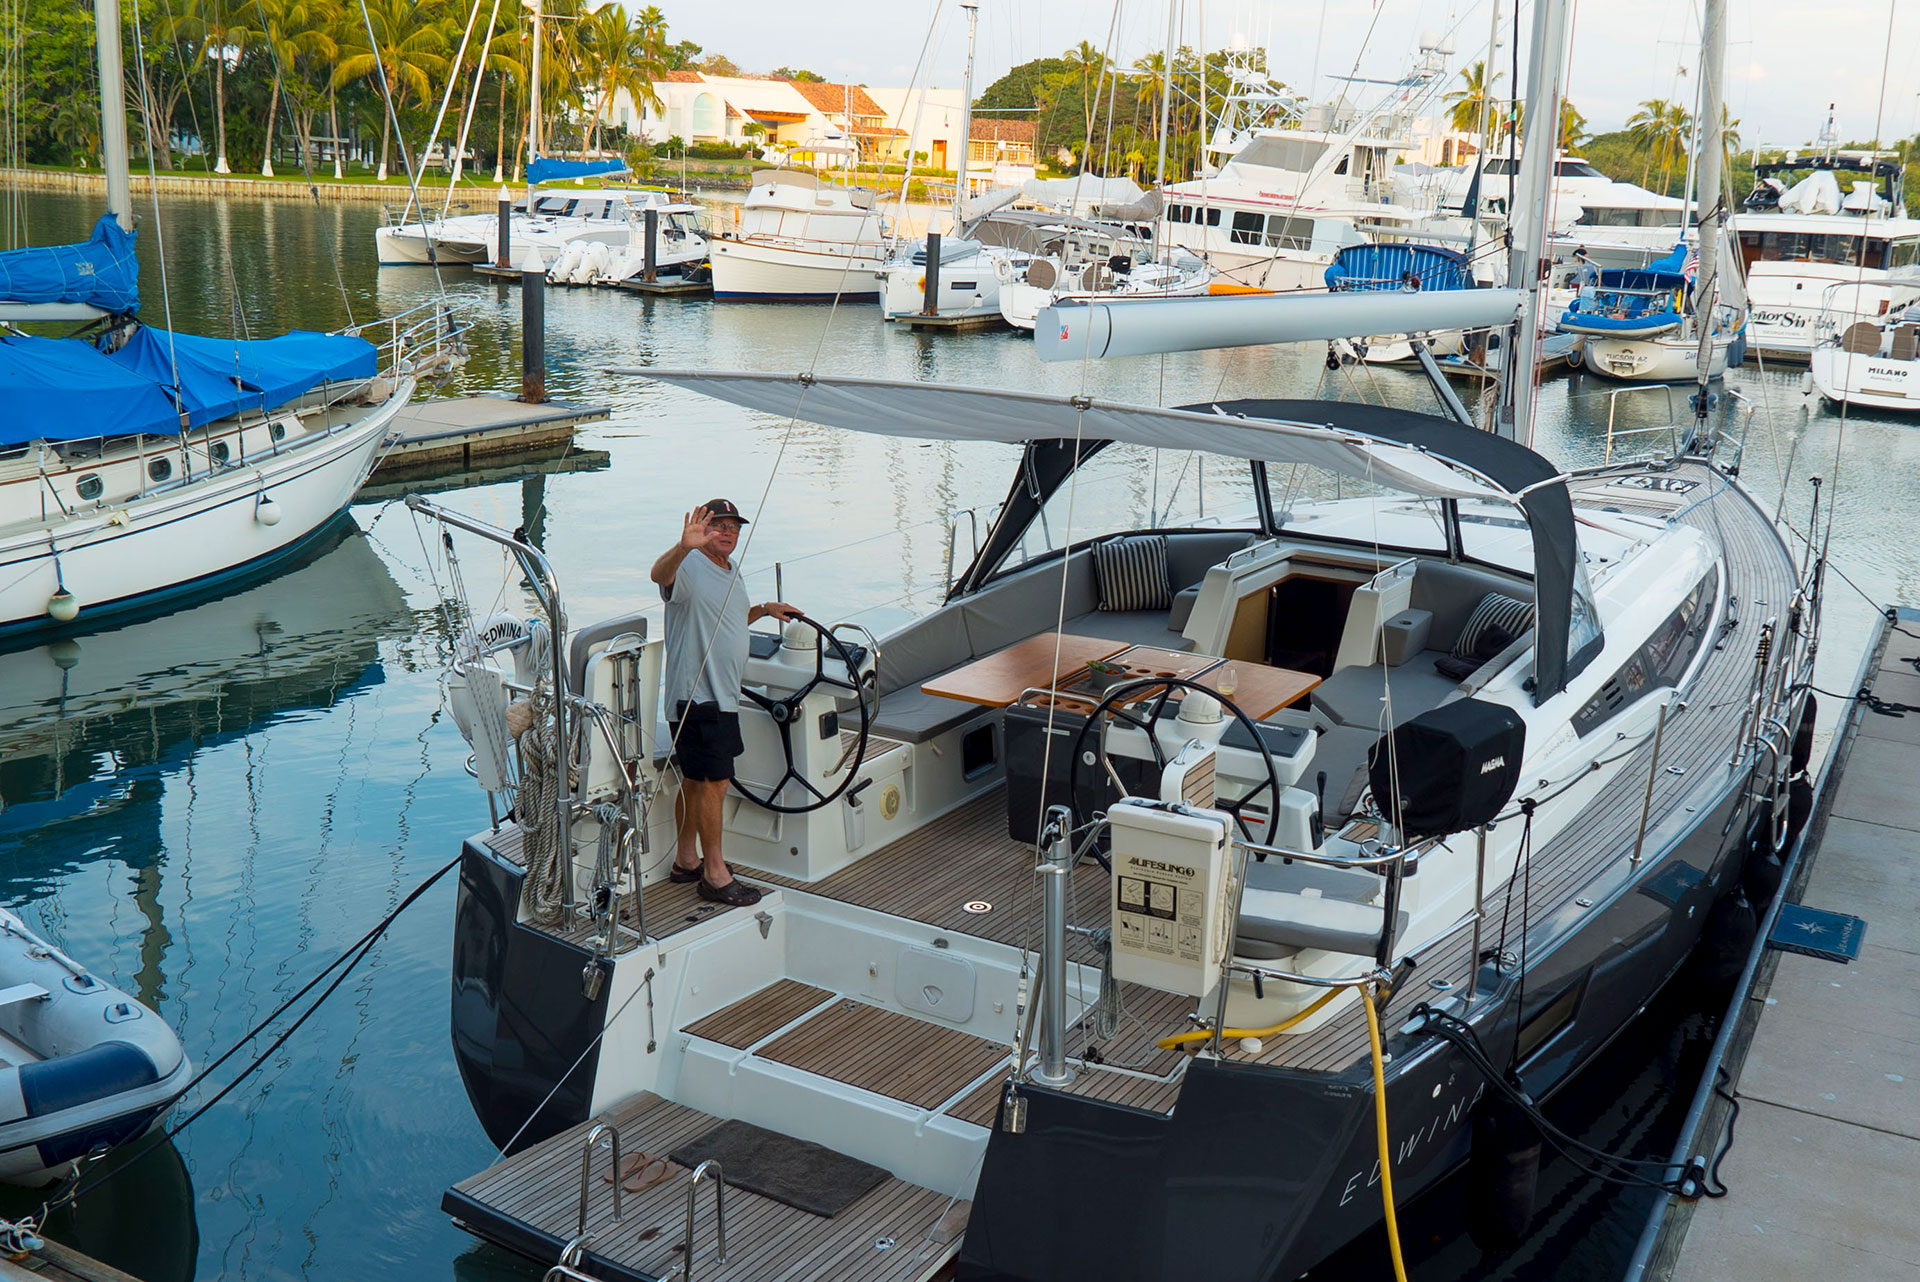 54ft-Jeanneau-sailing-yacht-at-Dock